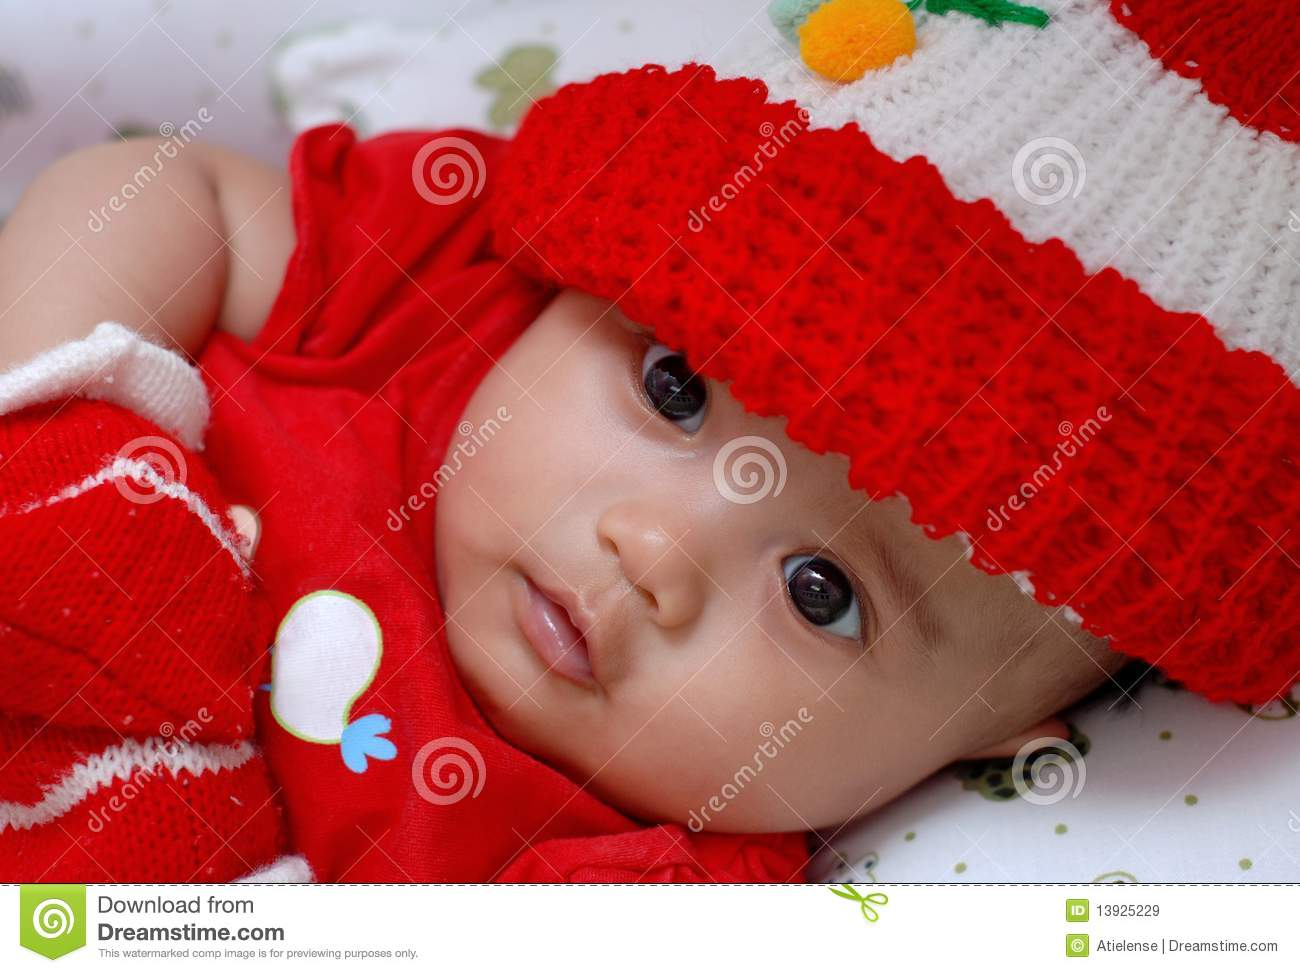 cute baby wearing cap stock photos - 1,427 images